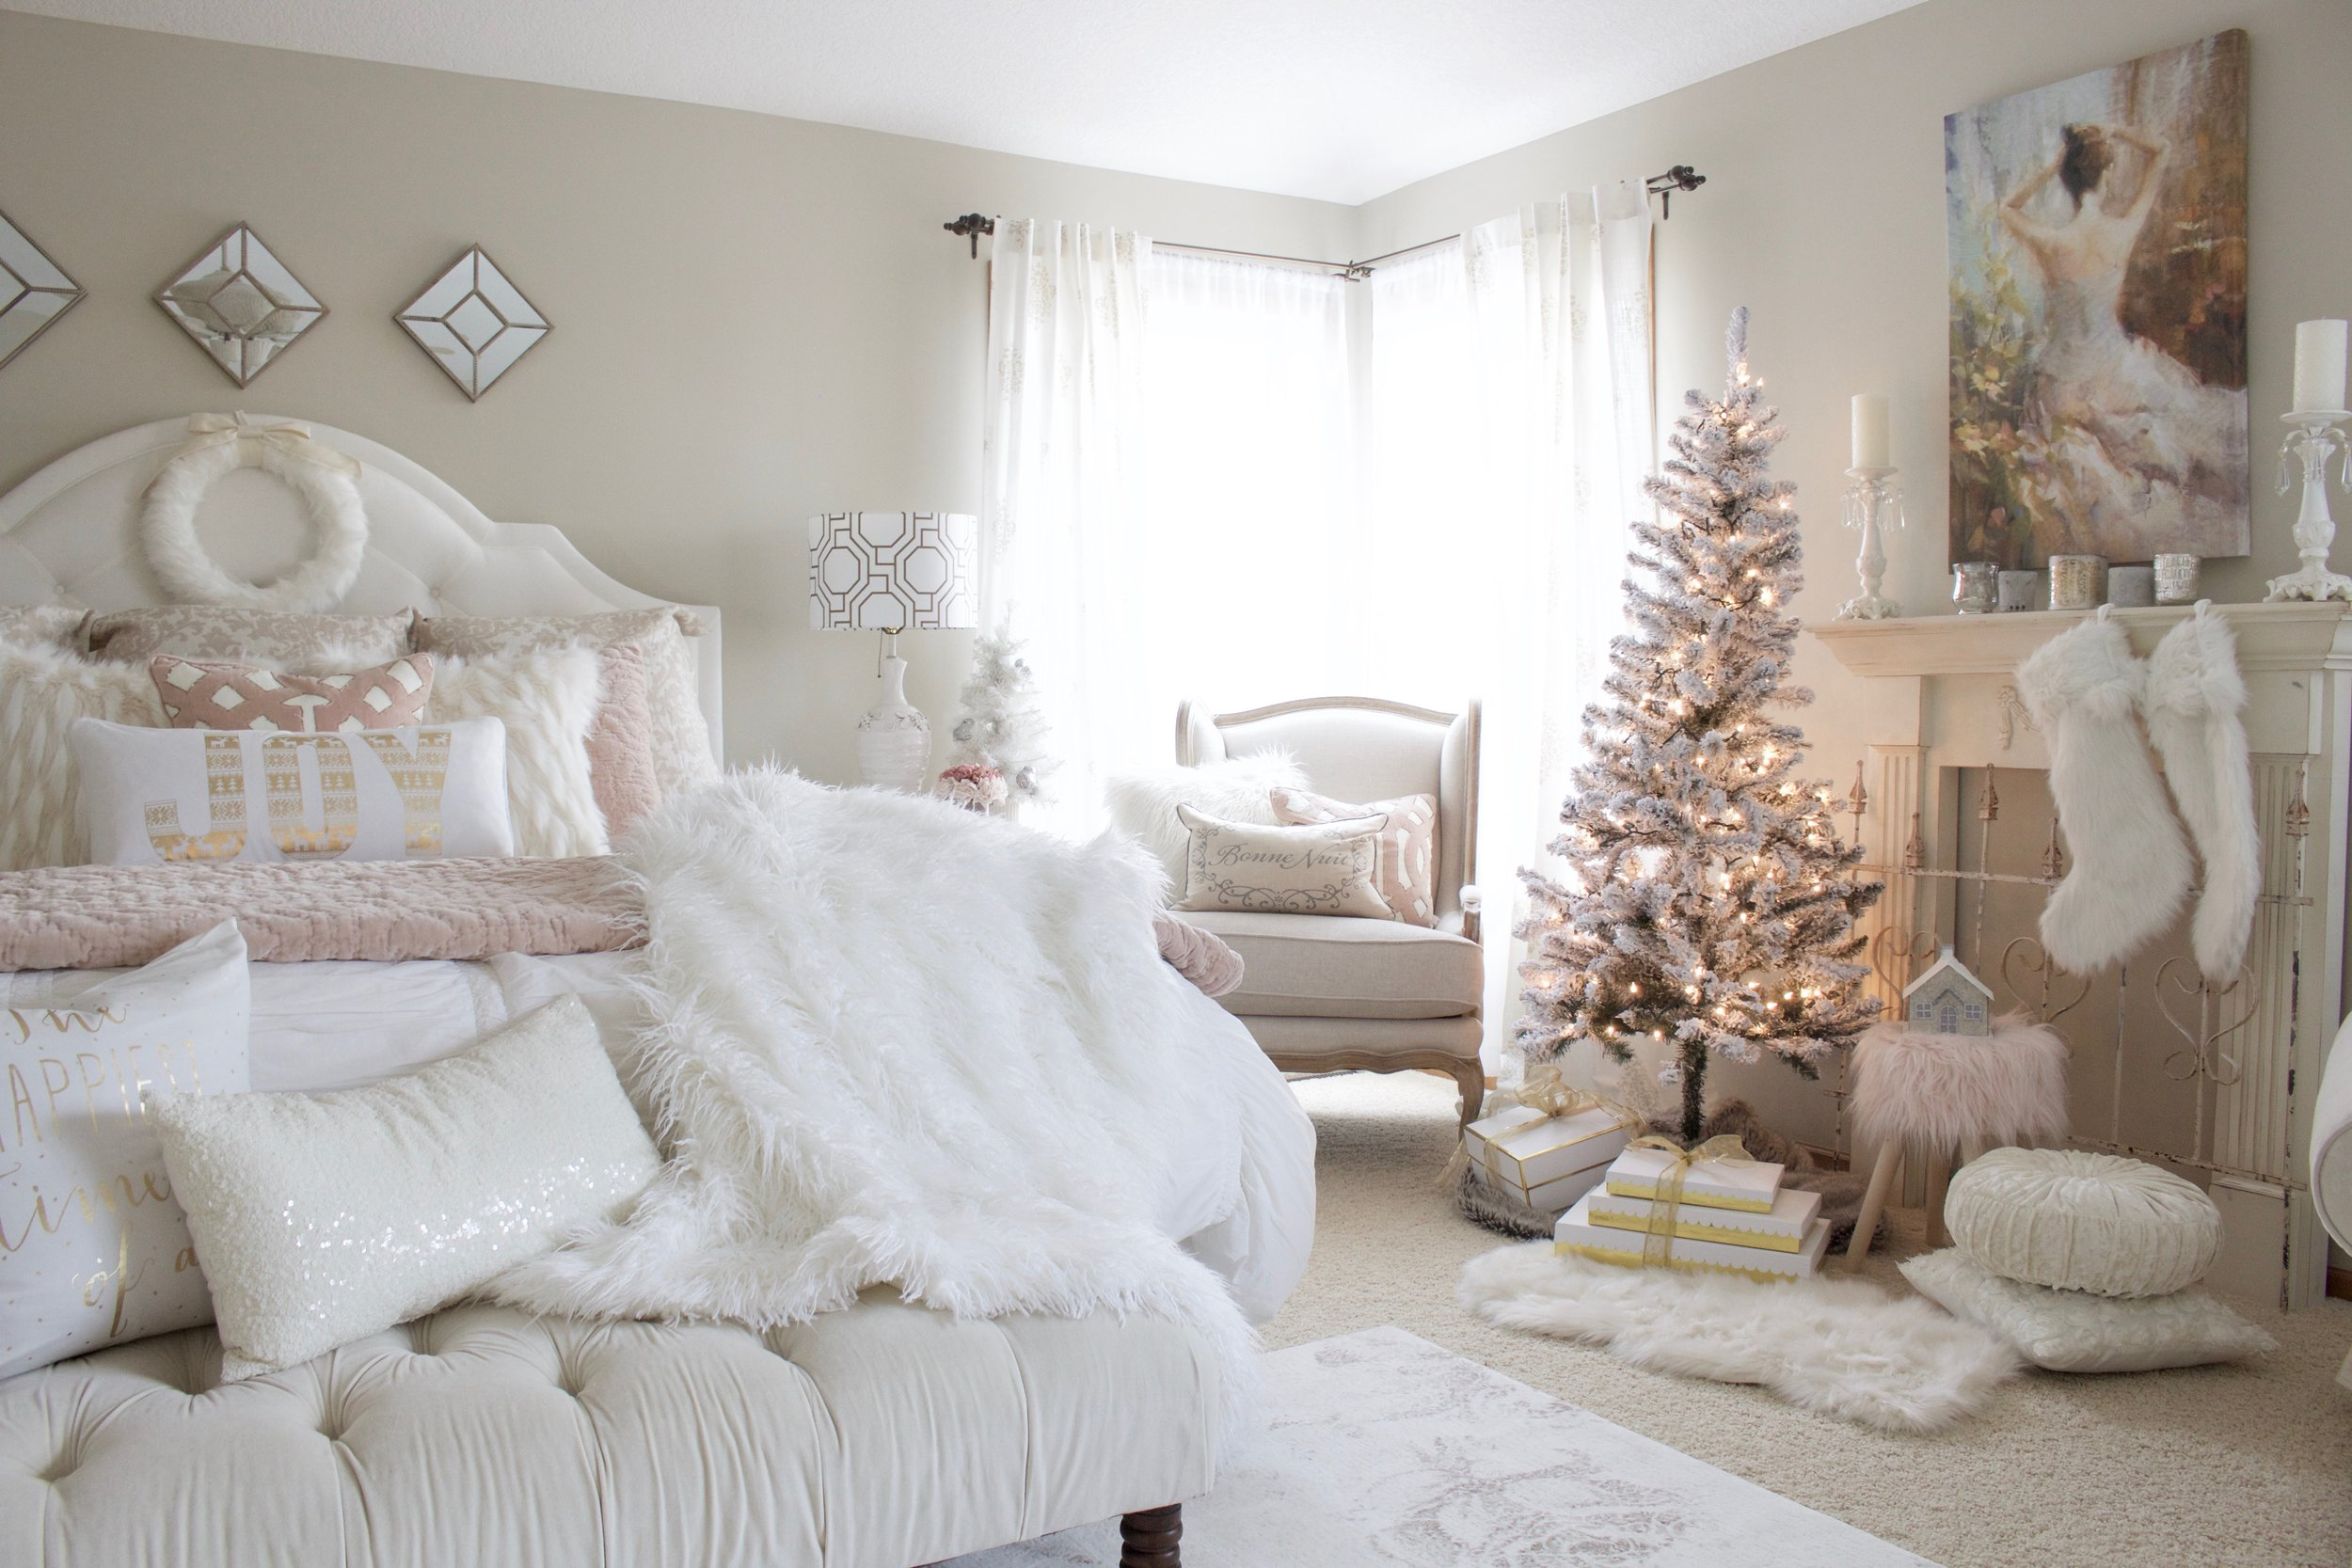 Home For Christmas - A Blush Pink Bedroom - Styled With Lace